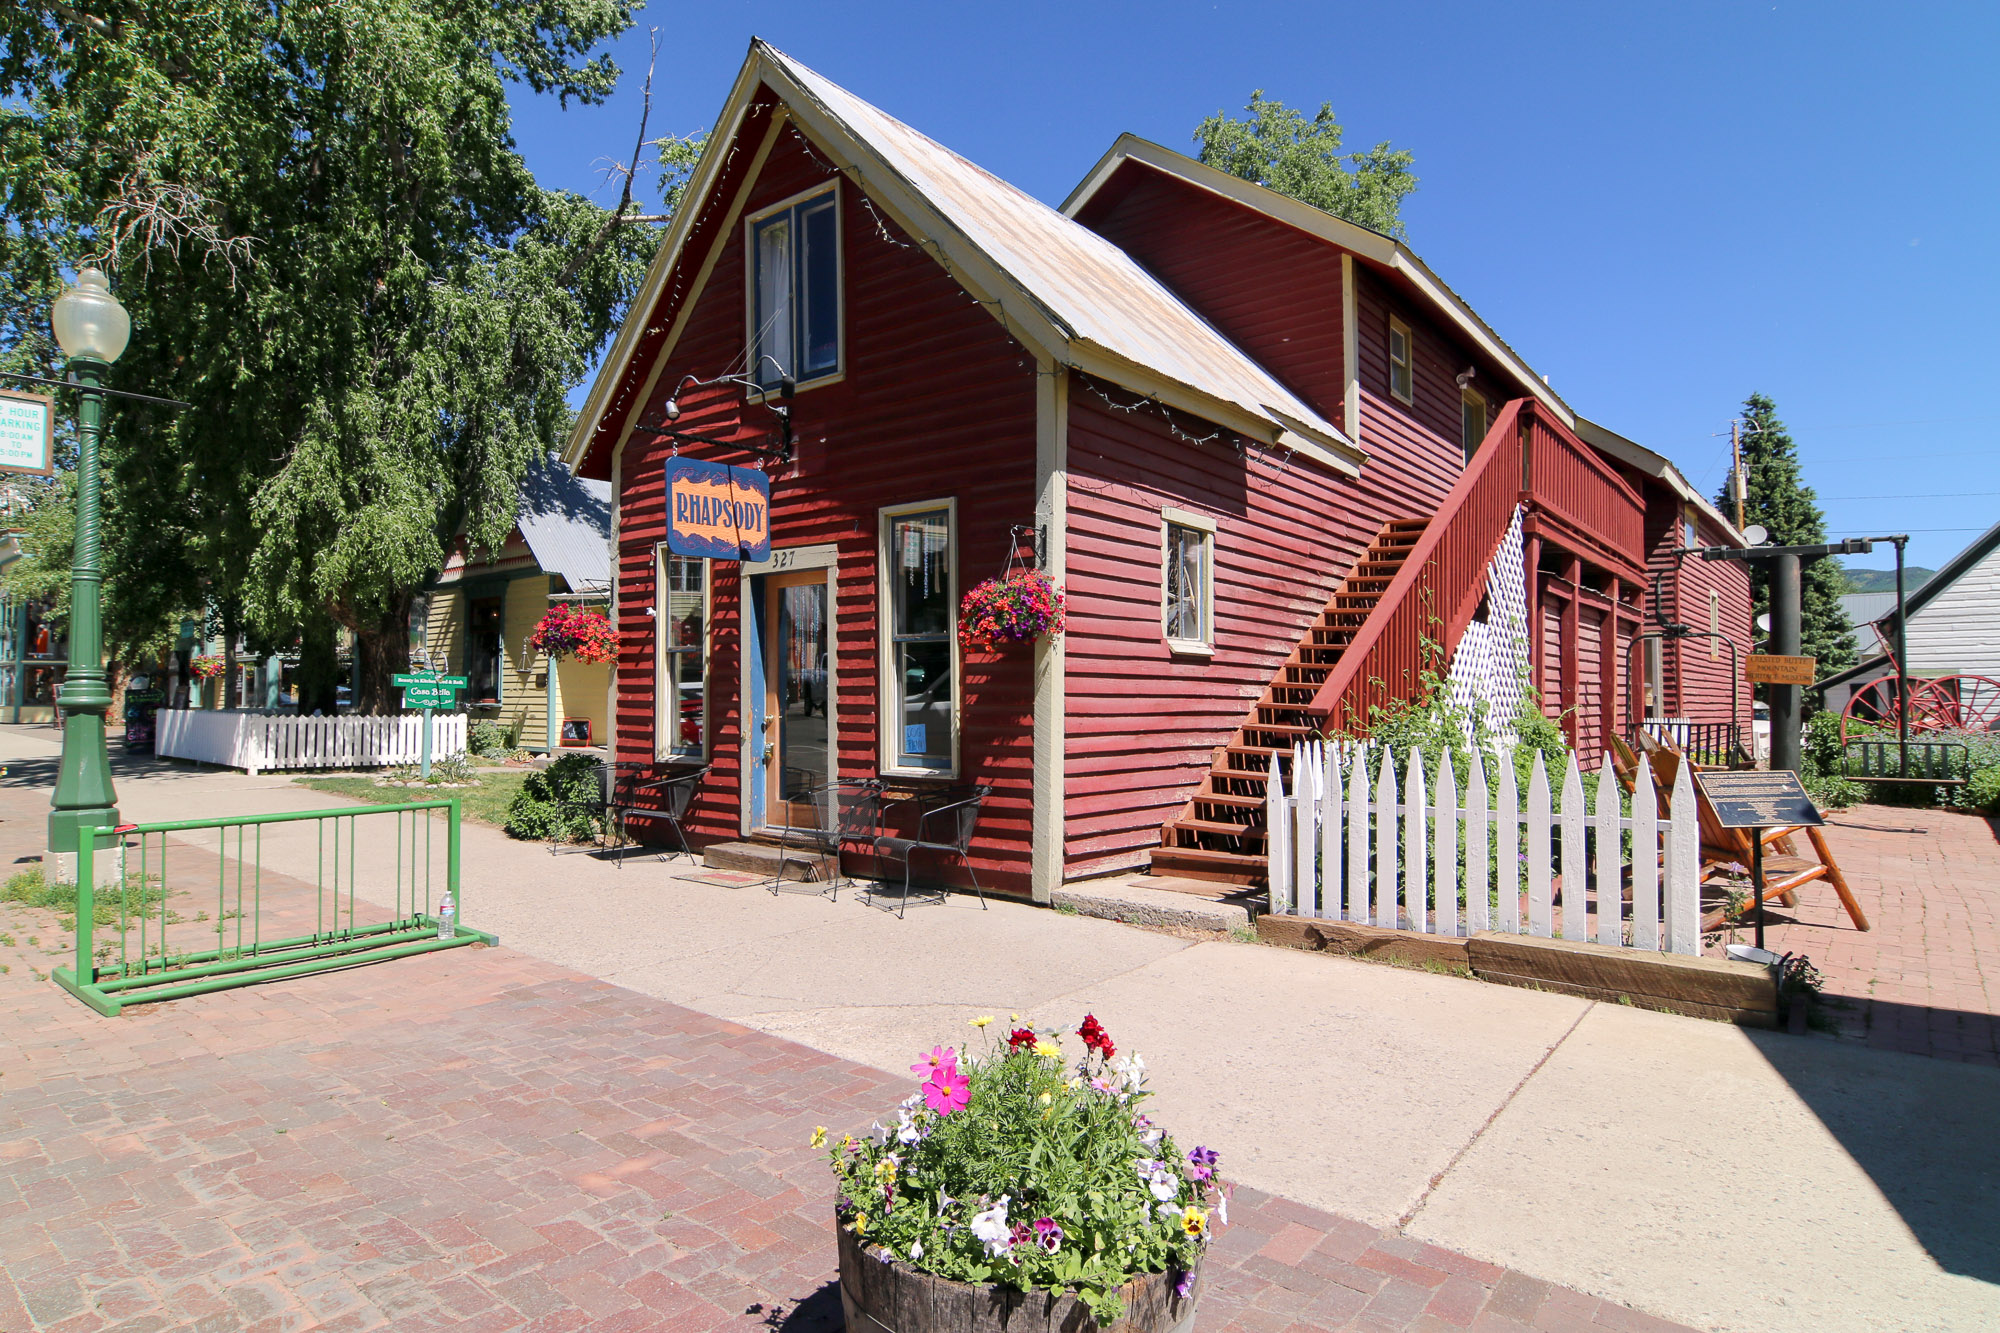 for Sale at Desirable Downtown Location 327 Elk Avenue Crested Butte, Colorado, 81224 United States